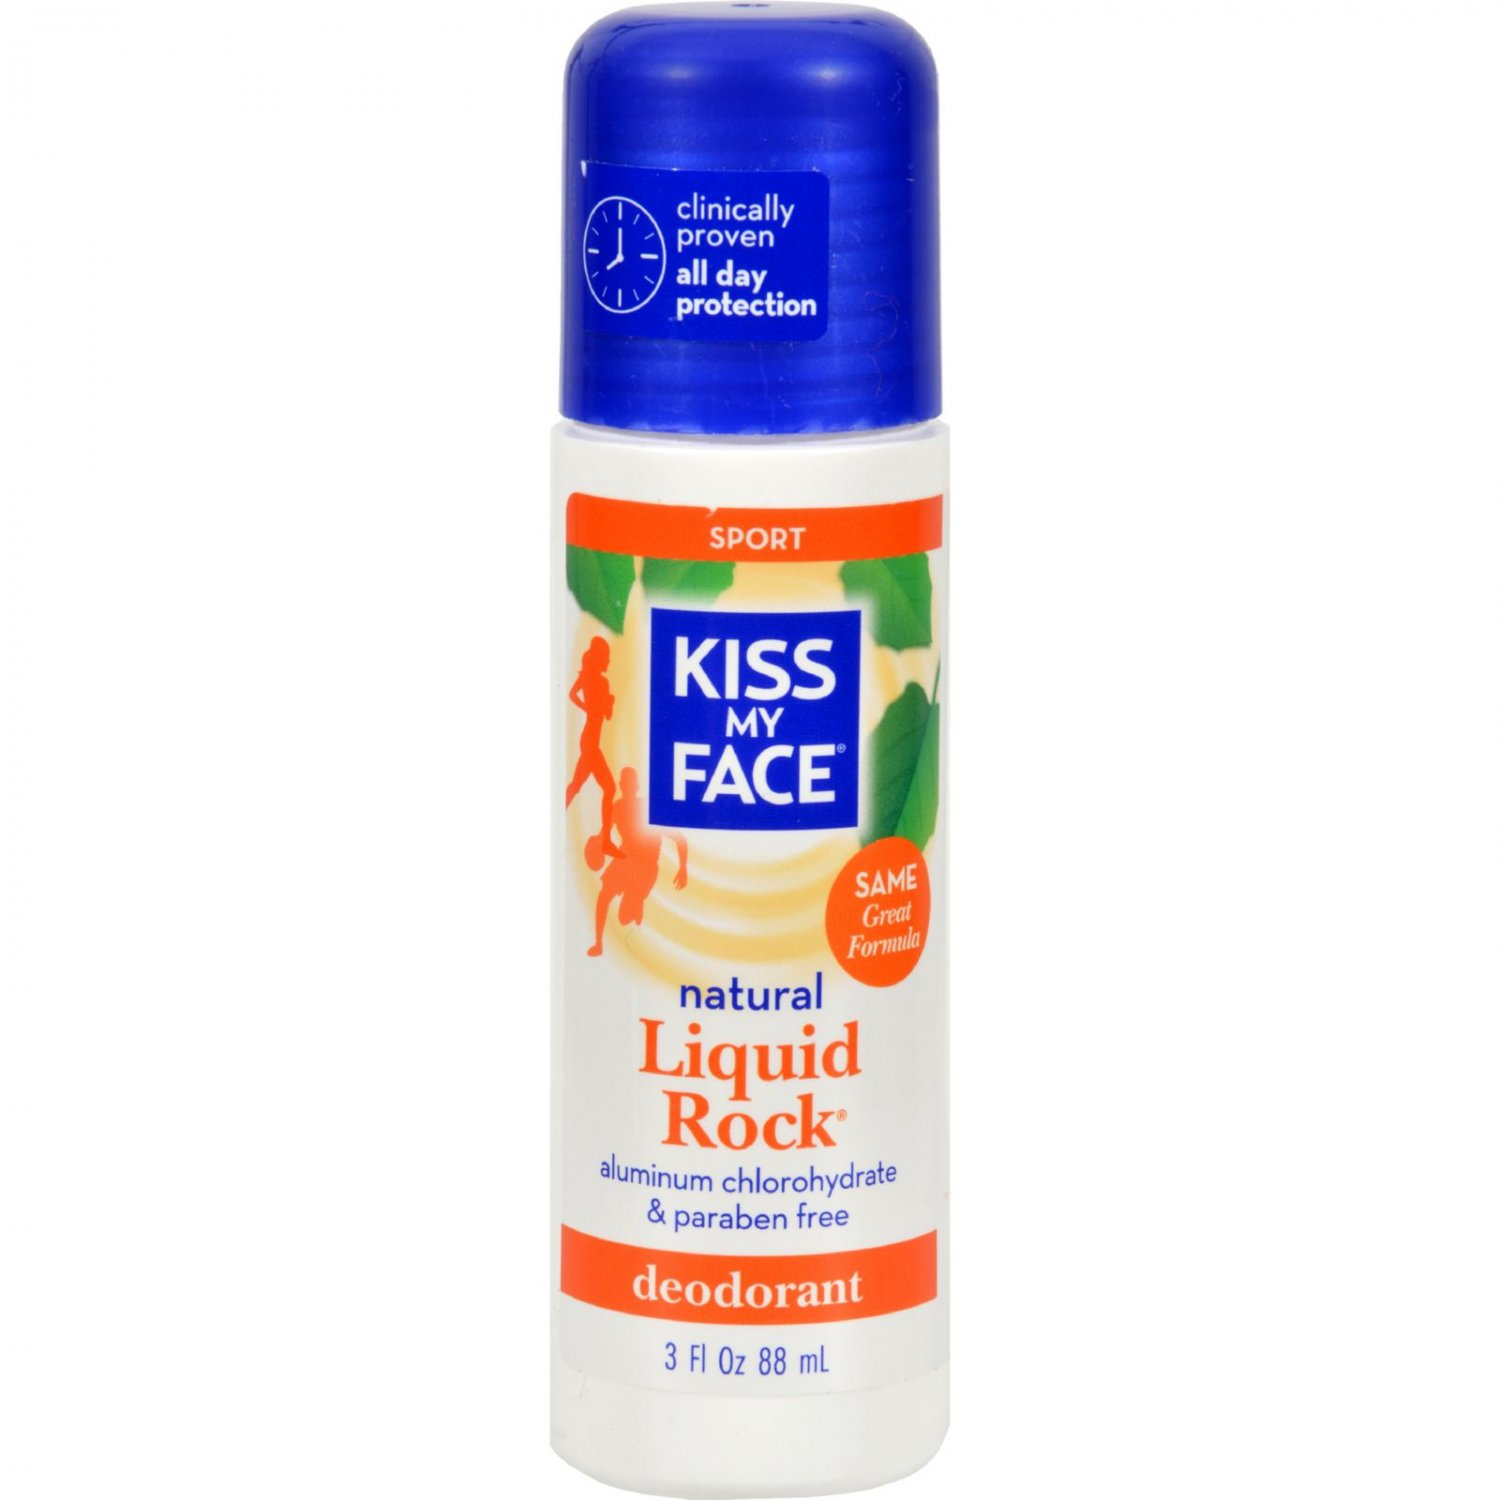 Kiss My Face Deodorant Liquid Rock Roll On Sport - 3 fl oz